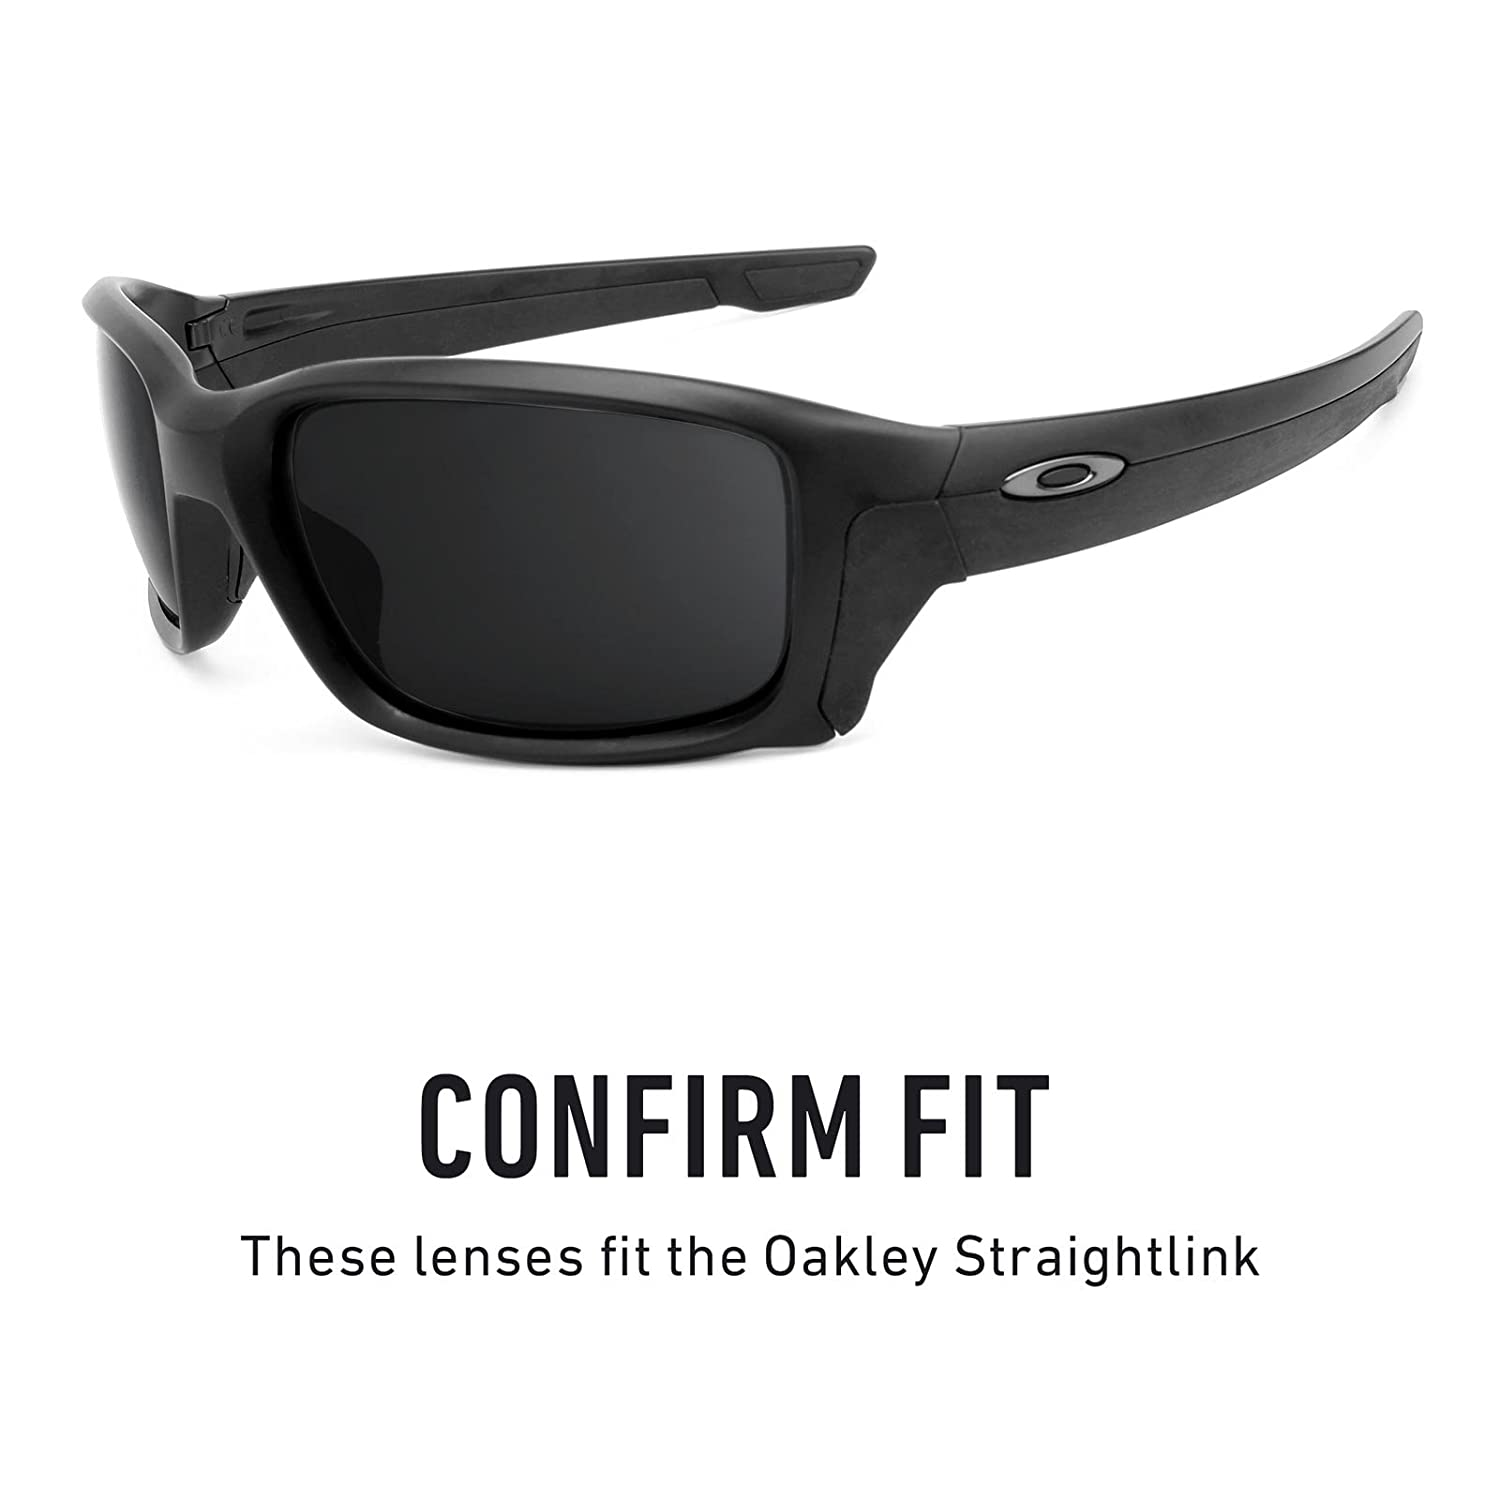 9d2e5215bf9 Amazon.com  Revant Polarized Replacement Lenses for Oakley Straightlink  Elite Black Chrome MirrorShield  Sports   Outdoors